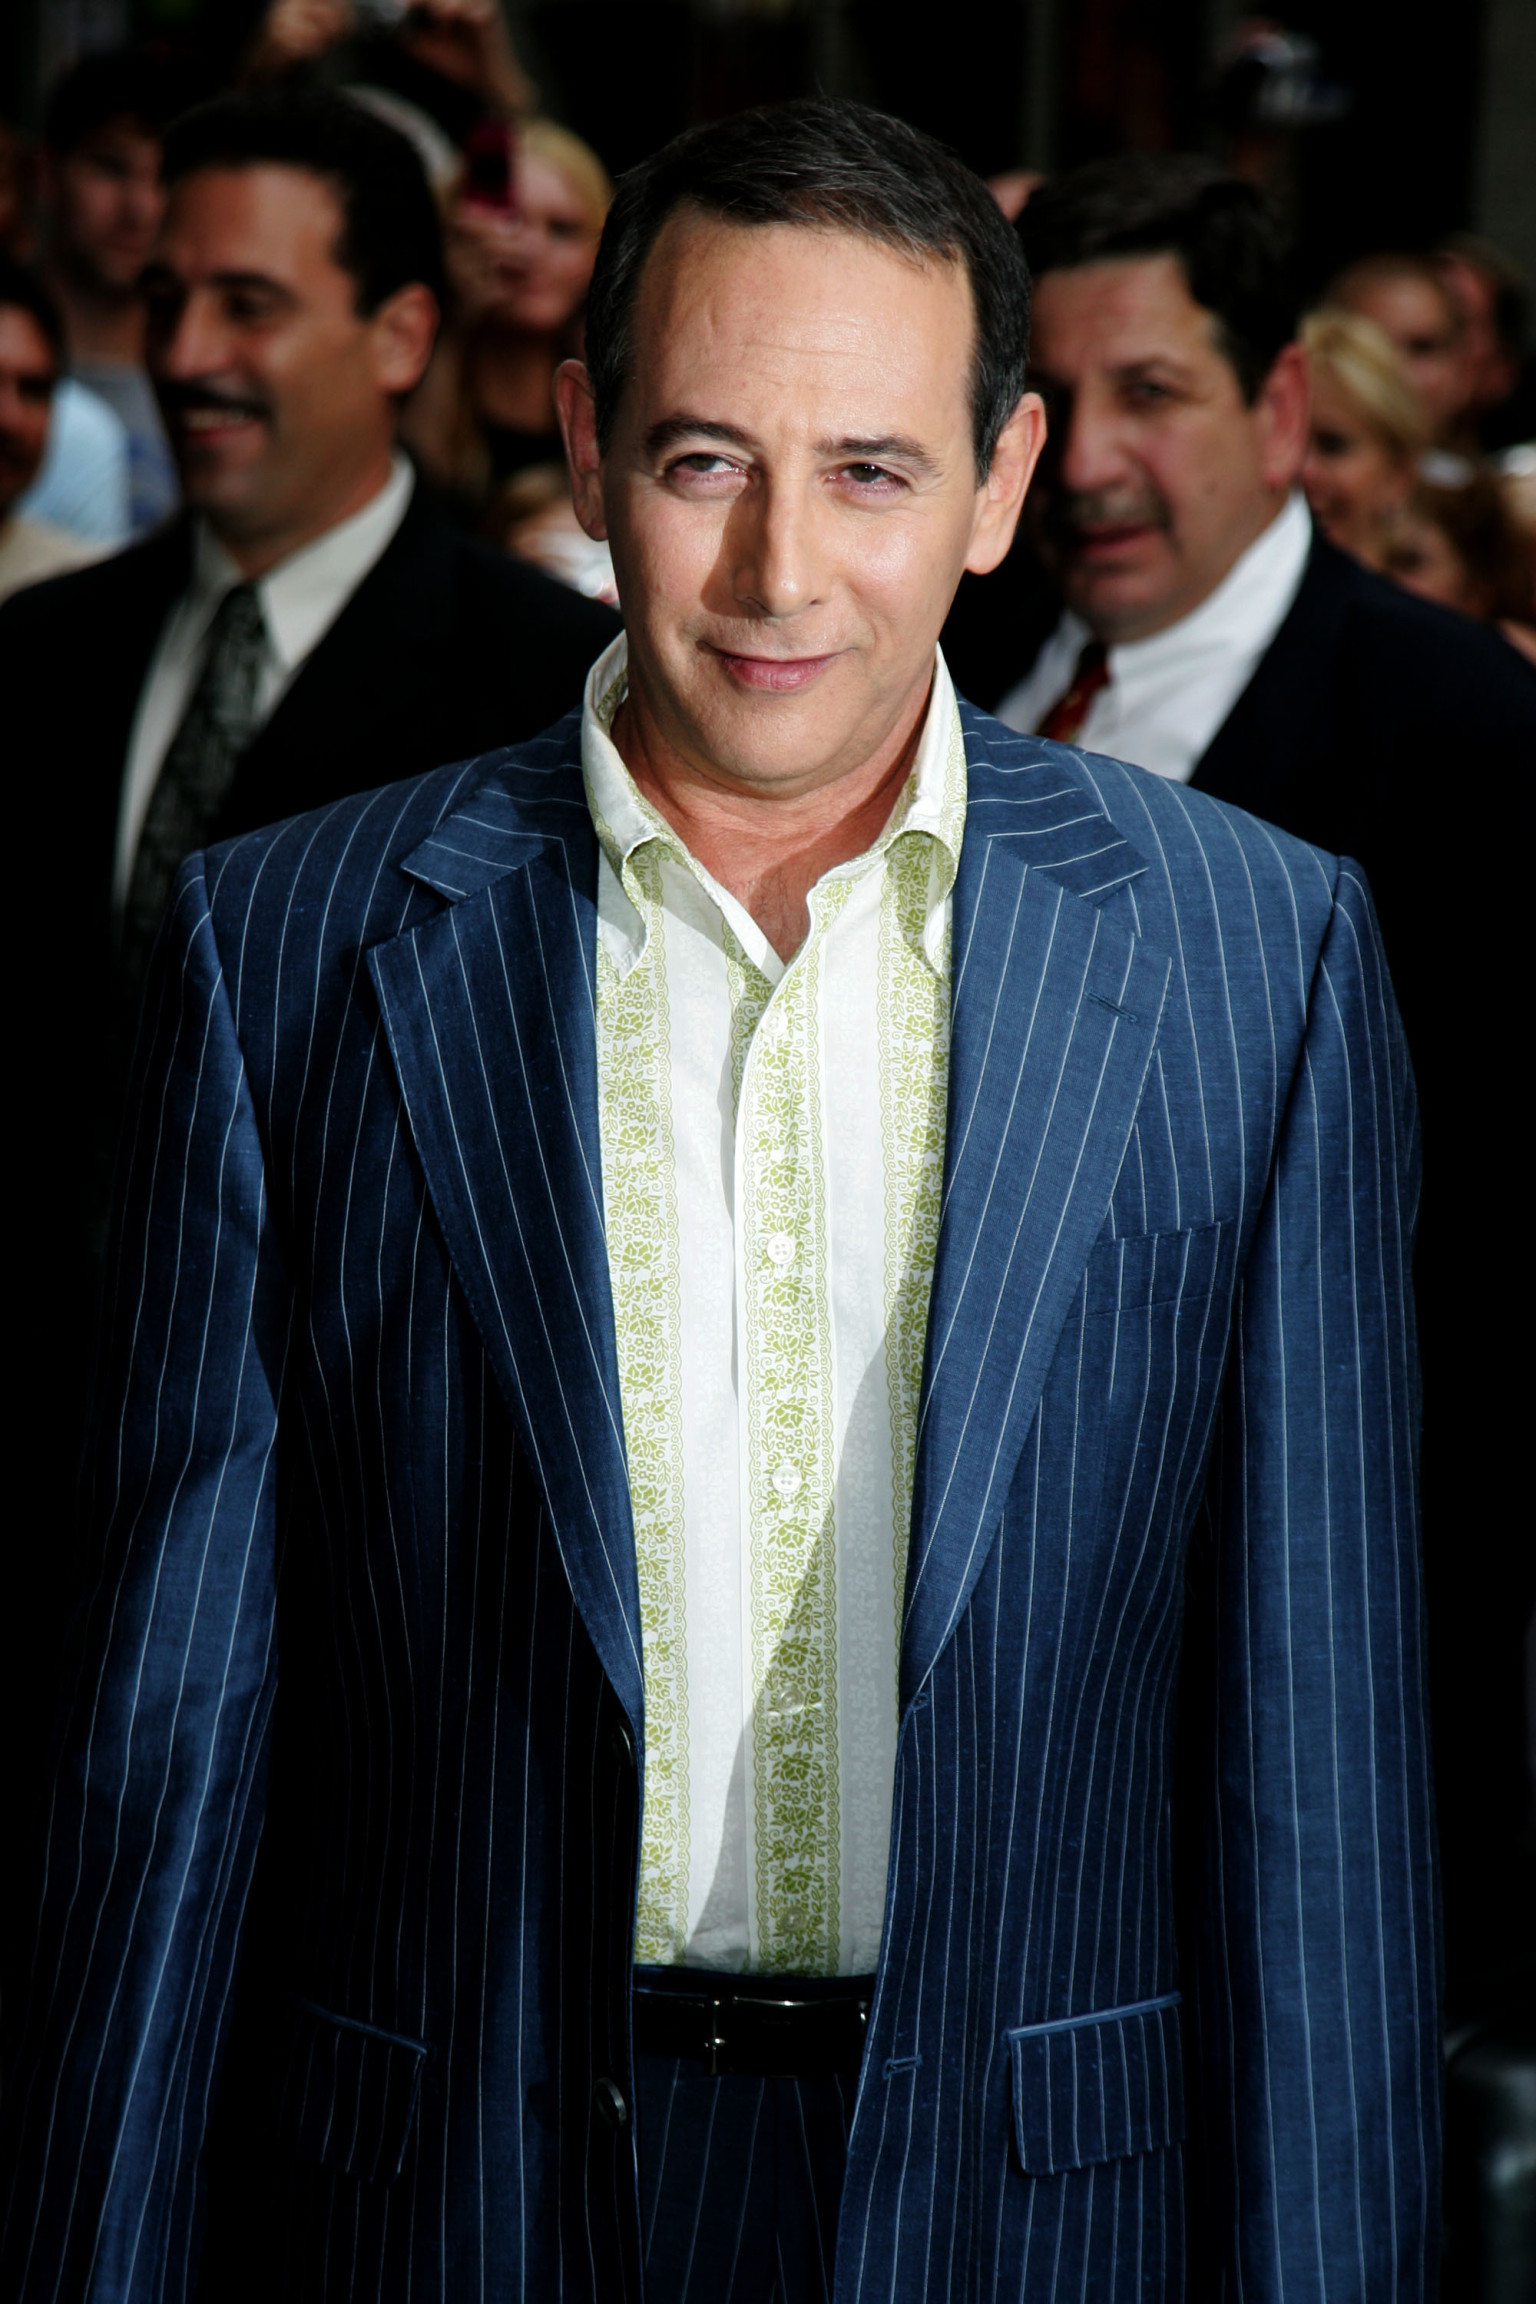 15 Mistakes Guys Are Making With Their Suits | HuffPost